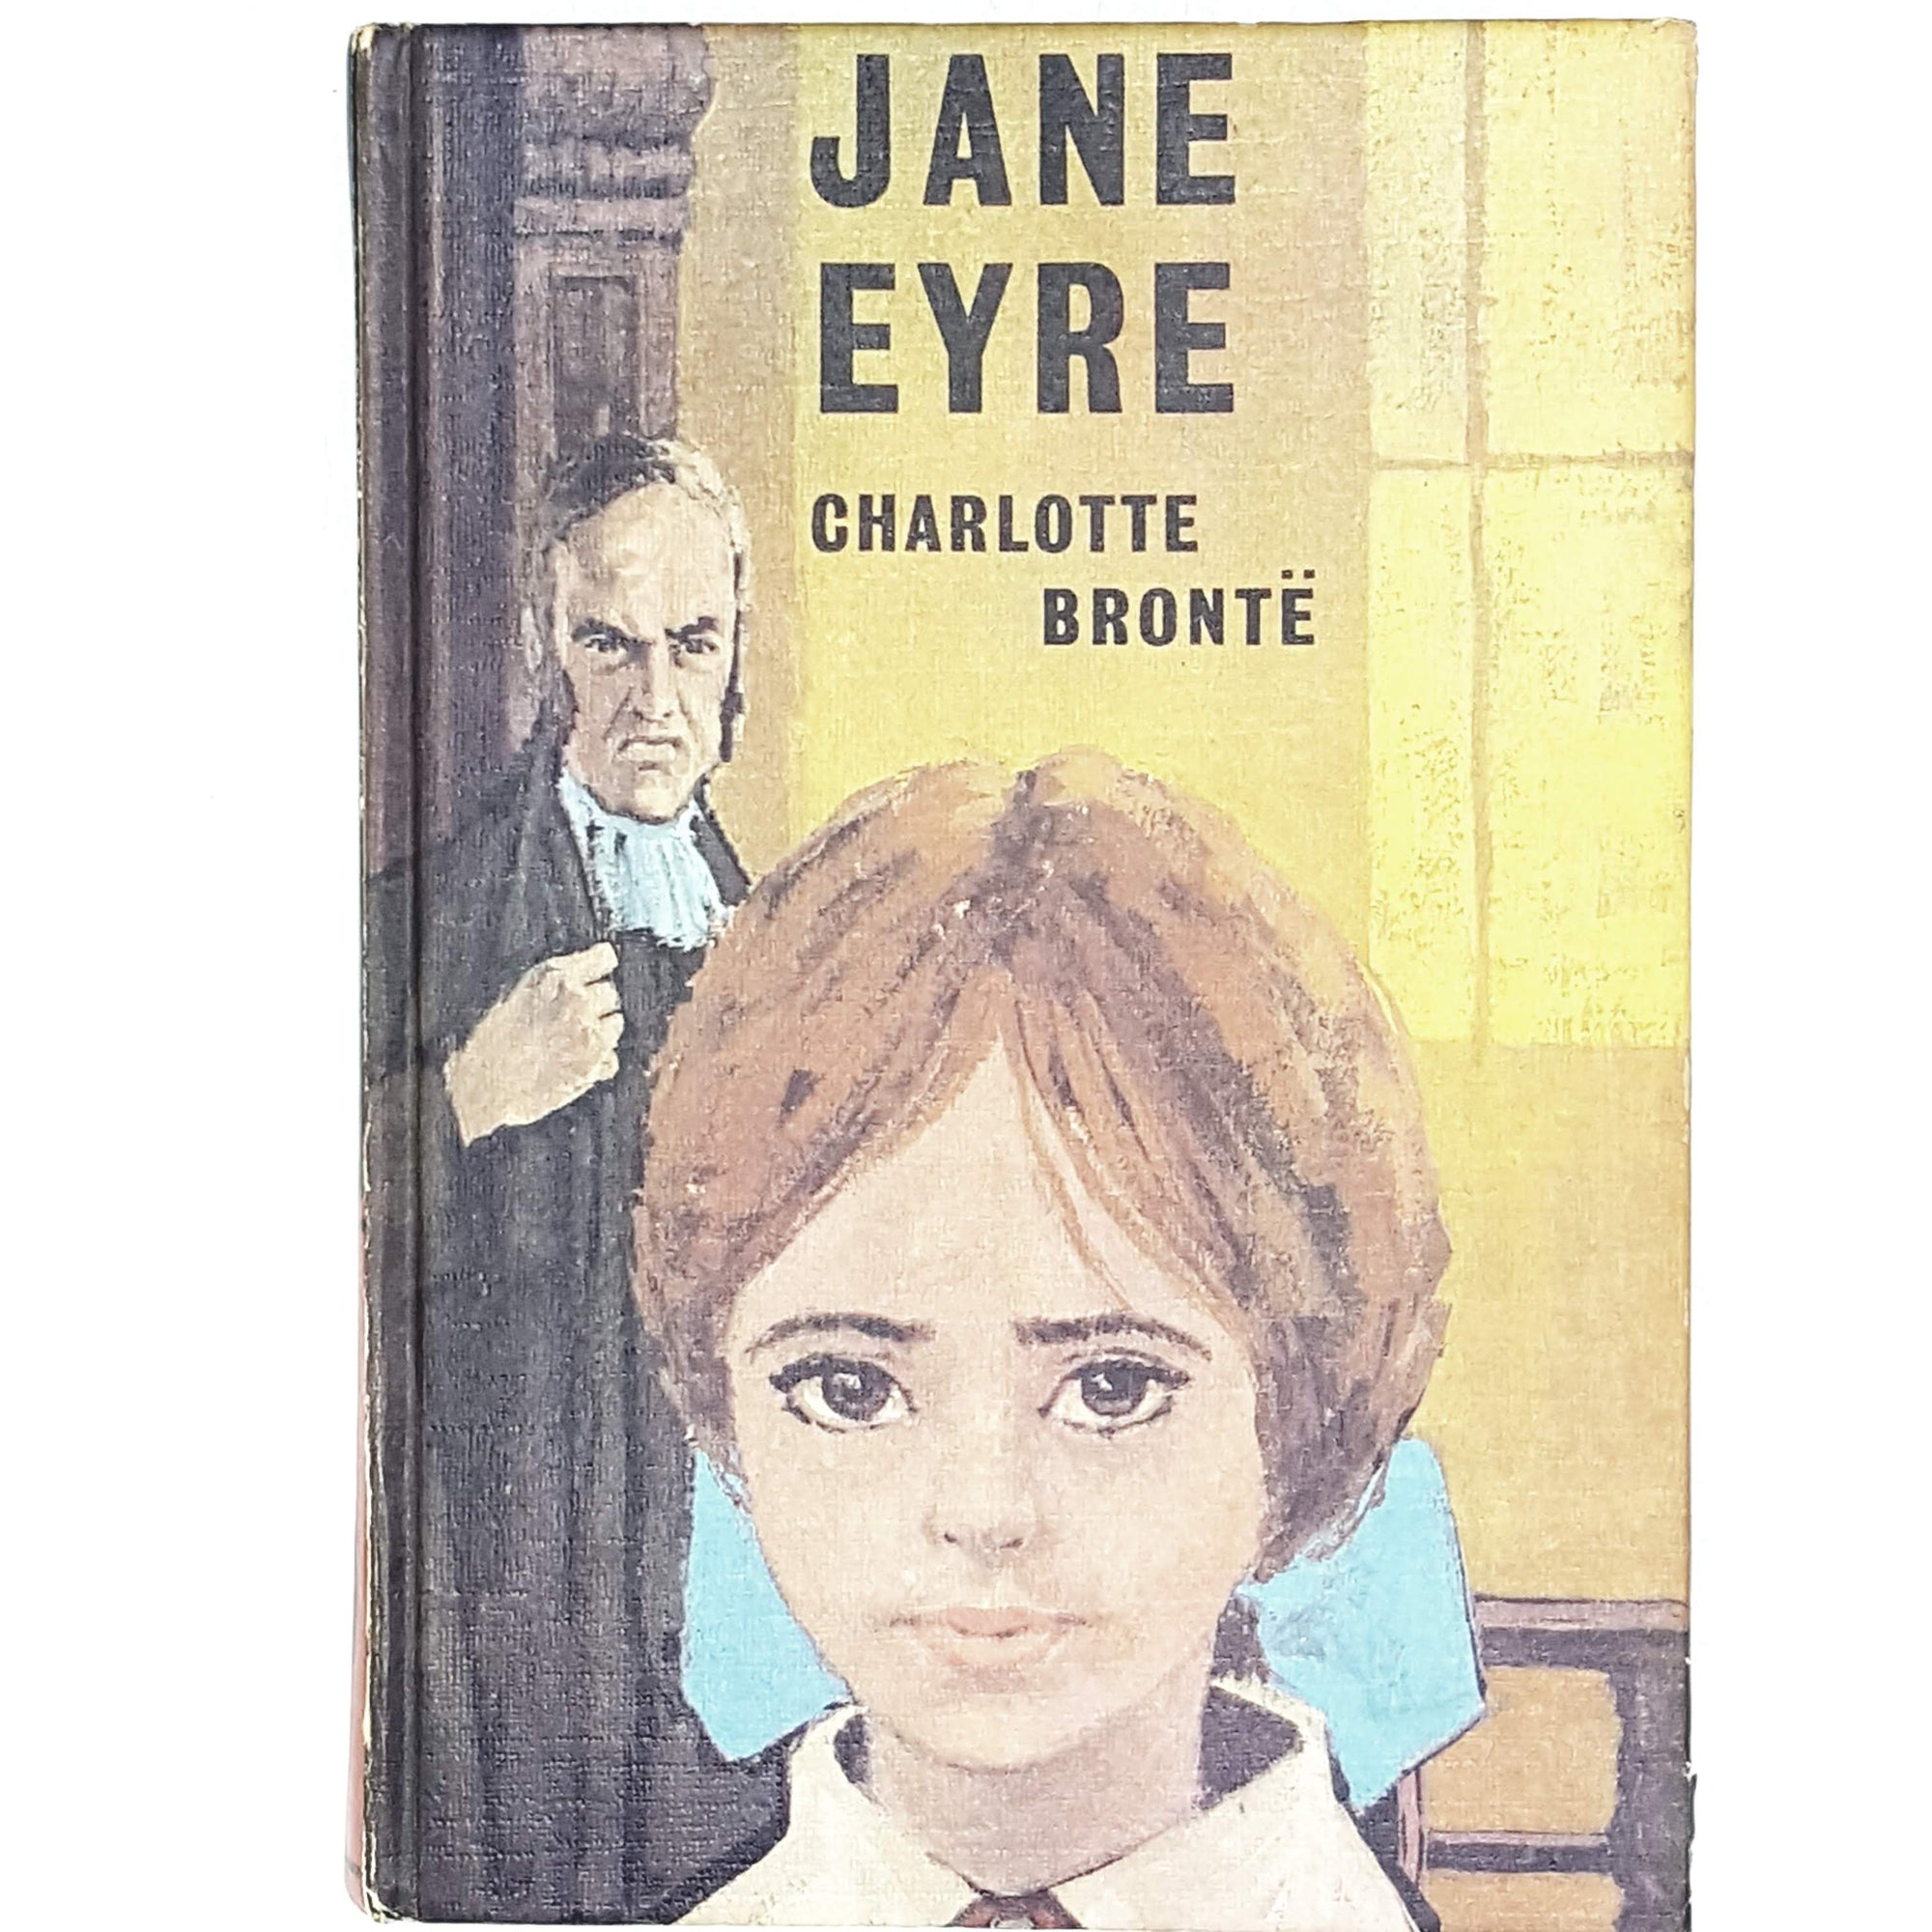 charlotte-bronte-jane-eyre-vintage-book-country-house-library